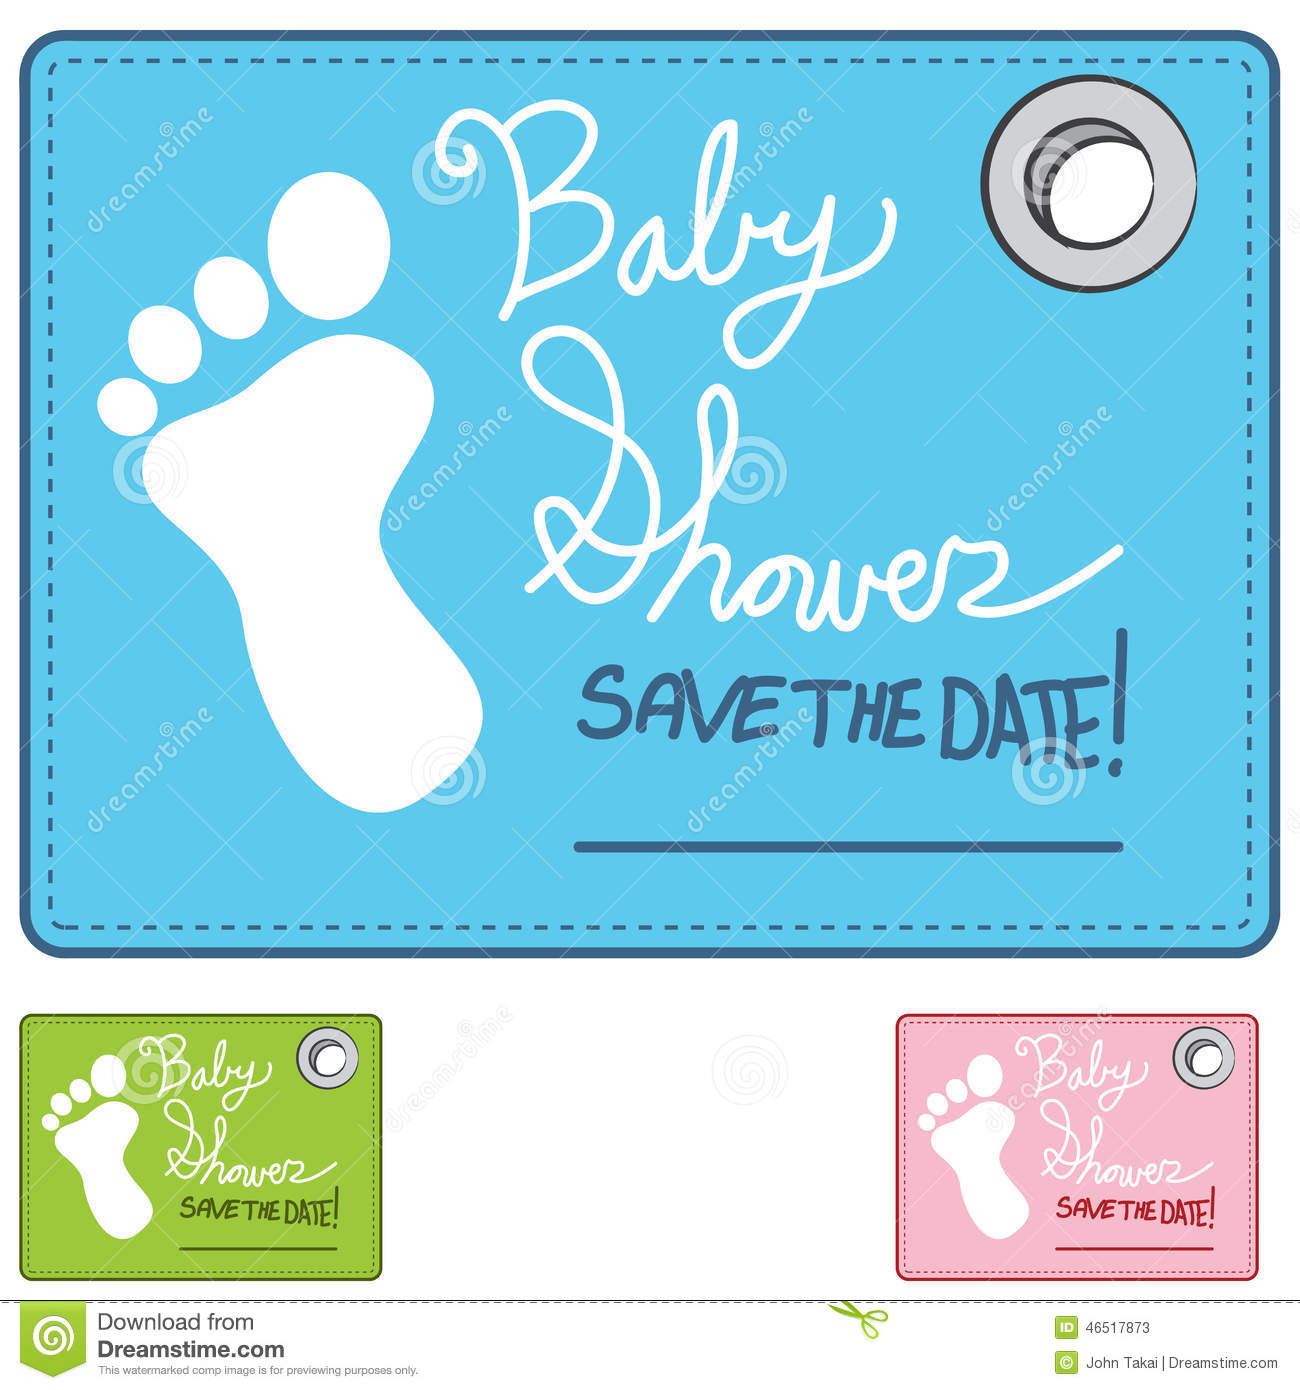 Baby Shower Reminder Card Stock Vector Image 46517873